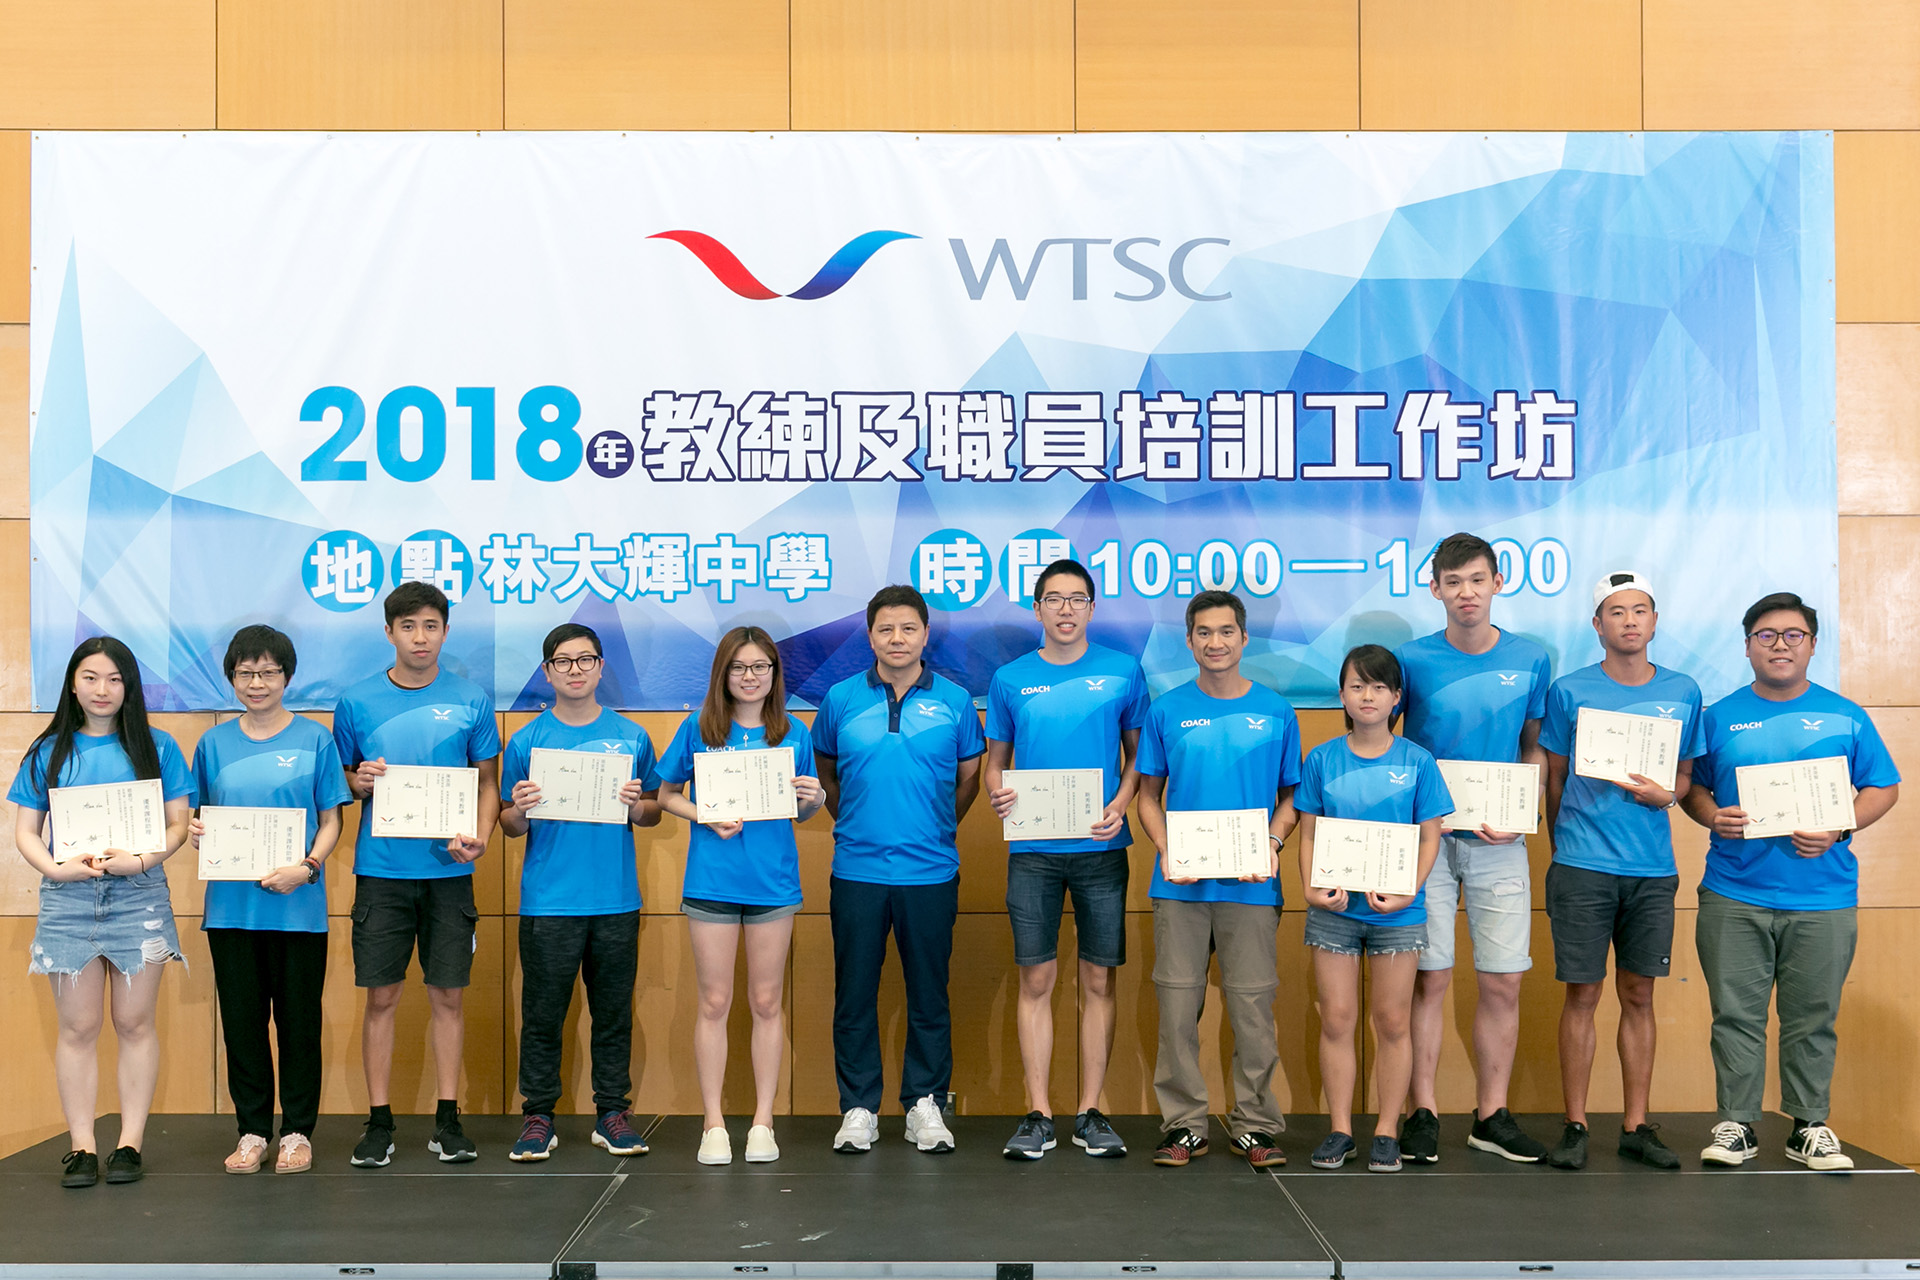 WTSC 2018 Training Day 7